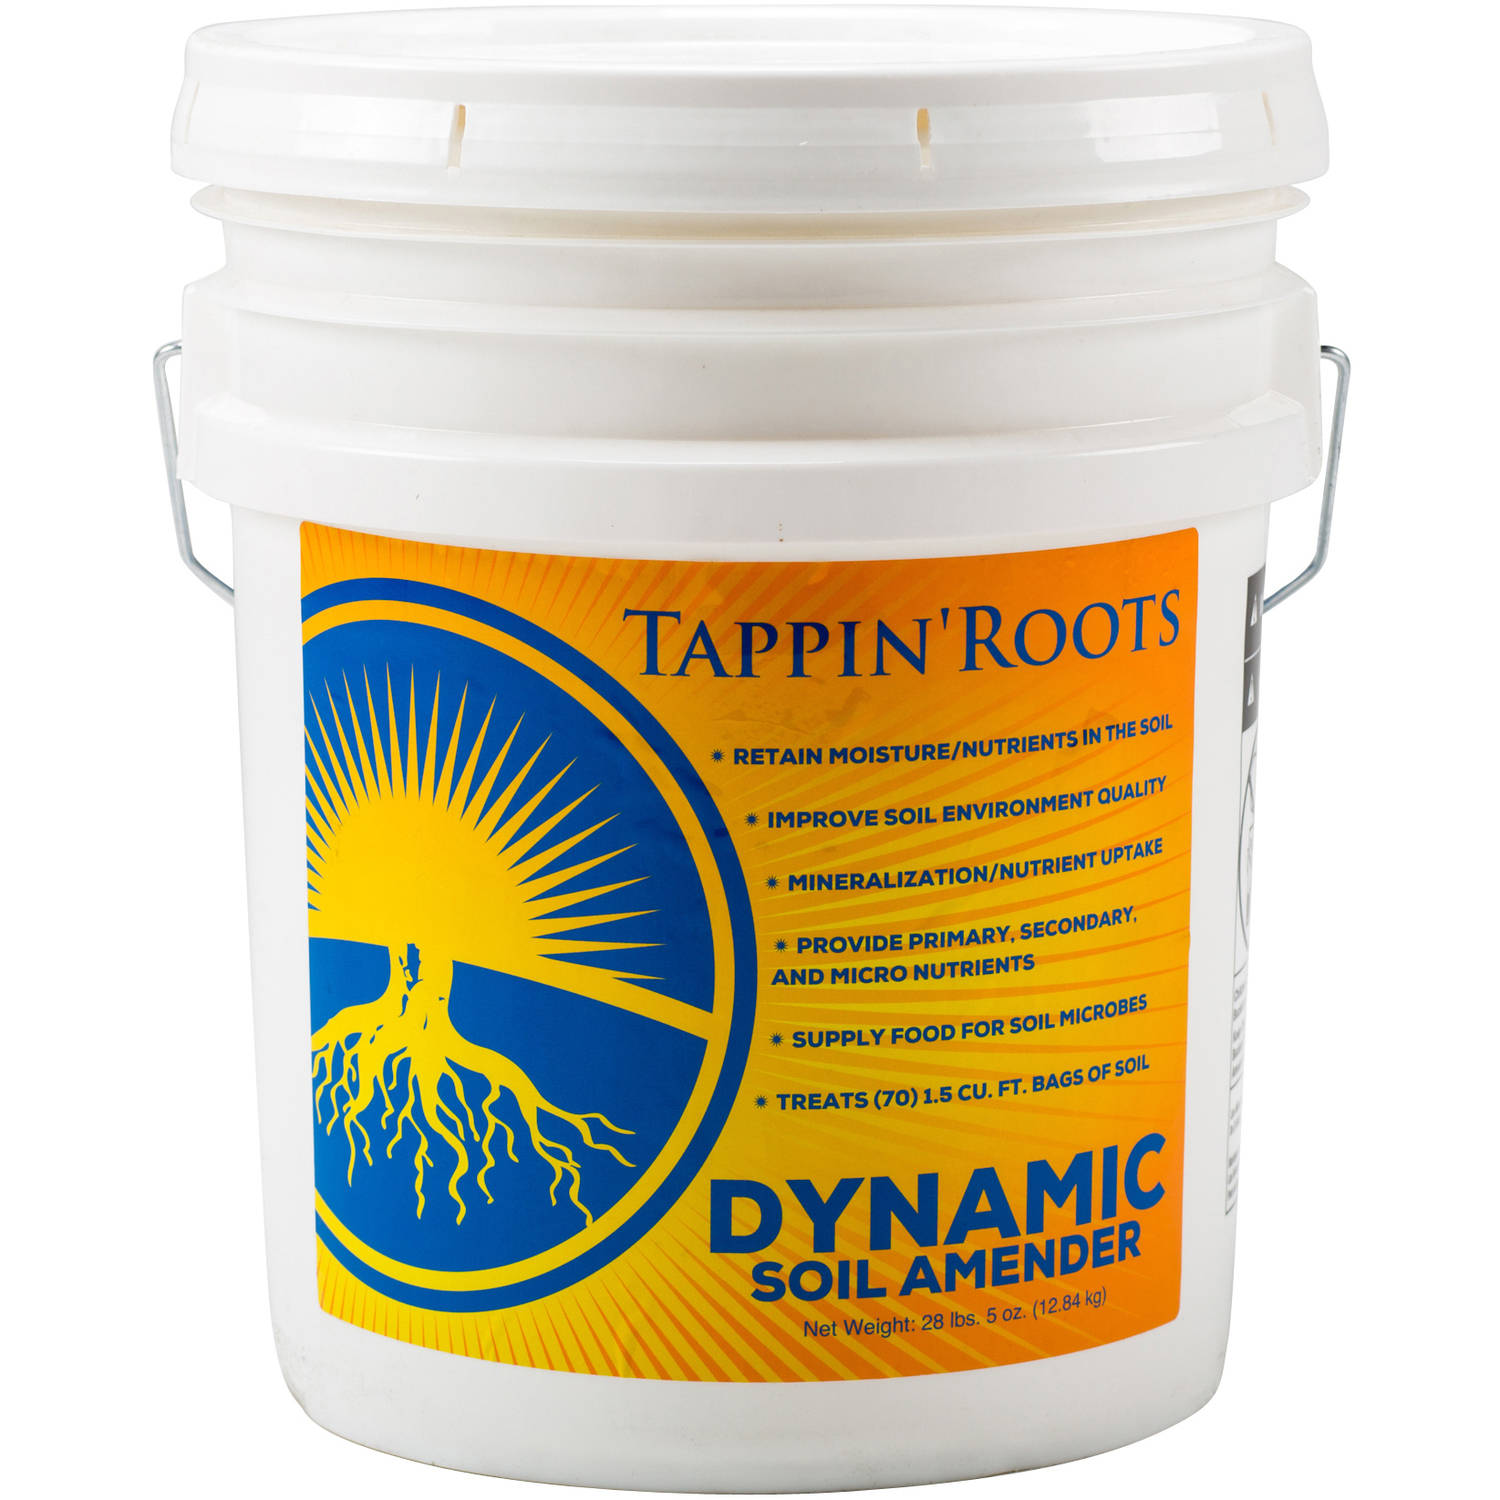 Tappin Roots Dynamic Soil Amender, 5 Gal